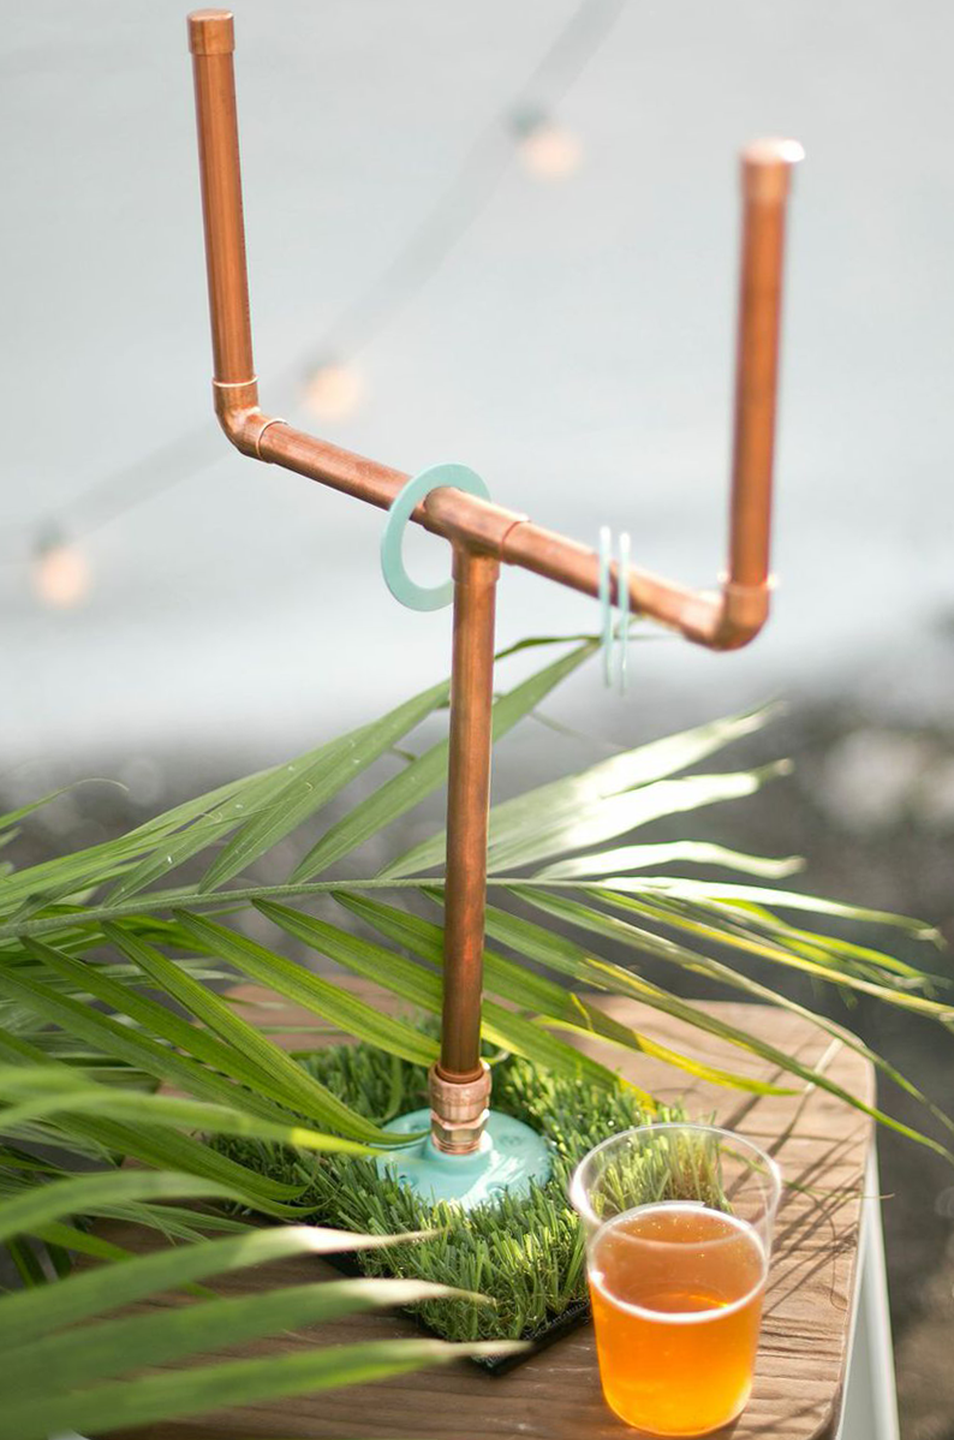 """<p>Make a football-themed ring toss with a DIY field goal post and washers. </p><p><strong>Get the tutorial at <a href=""""https://sugarandcloth.com/diy-copper-washers/"""" rel=""""nofollow noopener"""" target=""""_blank"""" data-ylk=""""slk:Sugar and Cloth"""" class=""""link rapid-noclick-resp"""">Sugar and Cloth</a>.</strong></p><p><strong><a class=""""link rapid-noclick-resp"""" href=""""https://www.amazon.com/Hillman-2226-Number-6-Stainless-50-Pack/dp/B00HYLXRIA?tag=syn-yahoo-20&ascsubtag=%5Bartid%7C10050.g.21095894%5Bsrc%7Cyahoo-us"""" rel=""""nofollow noopener"""" target=""""_blank"""" data-ylk=""""slk:SHOP METAL WASHERS"""">SHOP METAL WASHERS</a></strong></p>"""